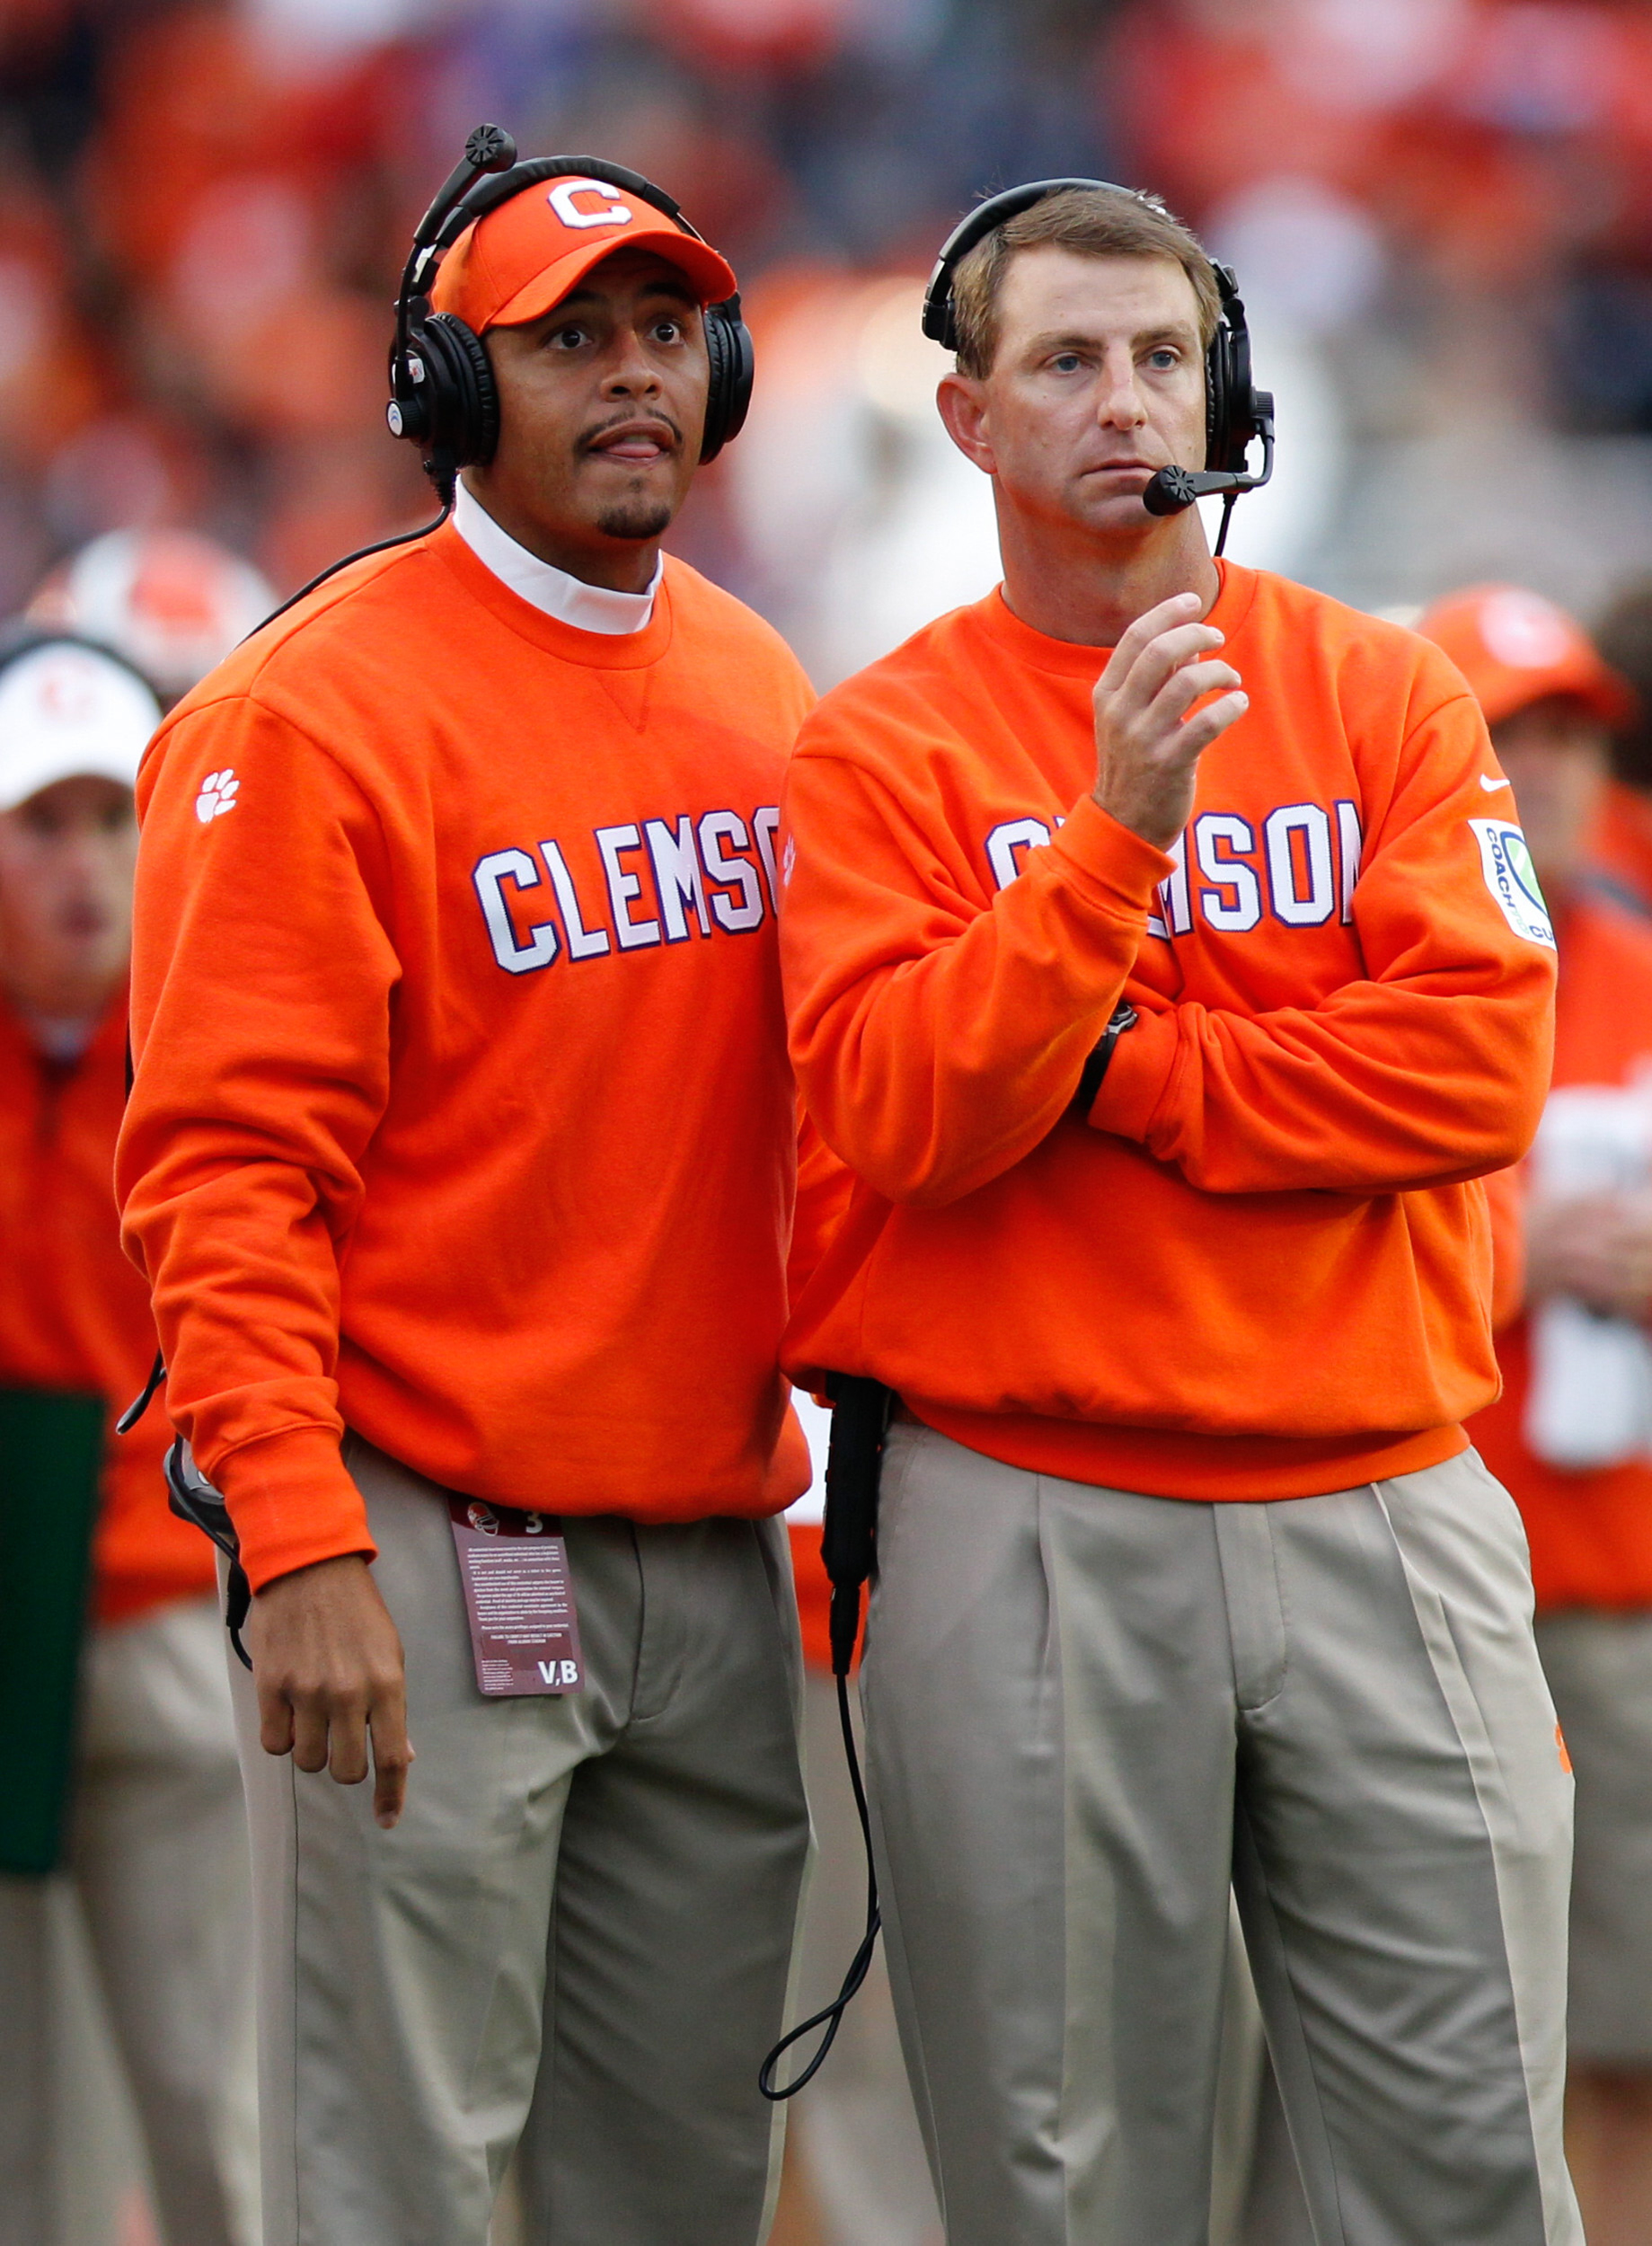 Clemson Tigers head coach Dabo Swinney, right, and assistant coach Tony Elliott on the sideline during the second quarter against the Boston College Eagles at Alumni Stadium.